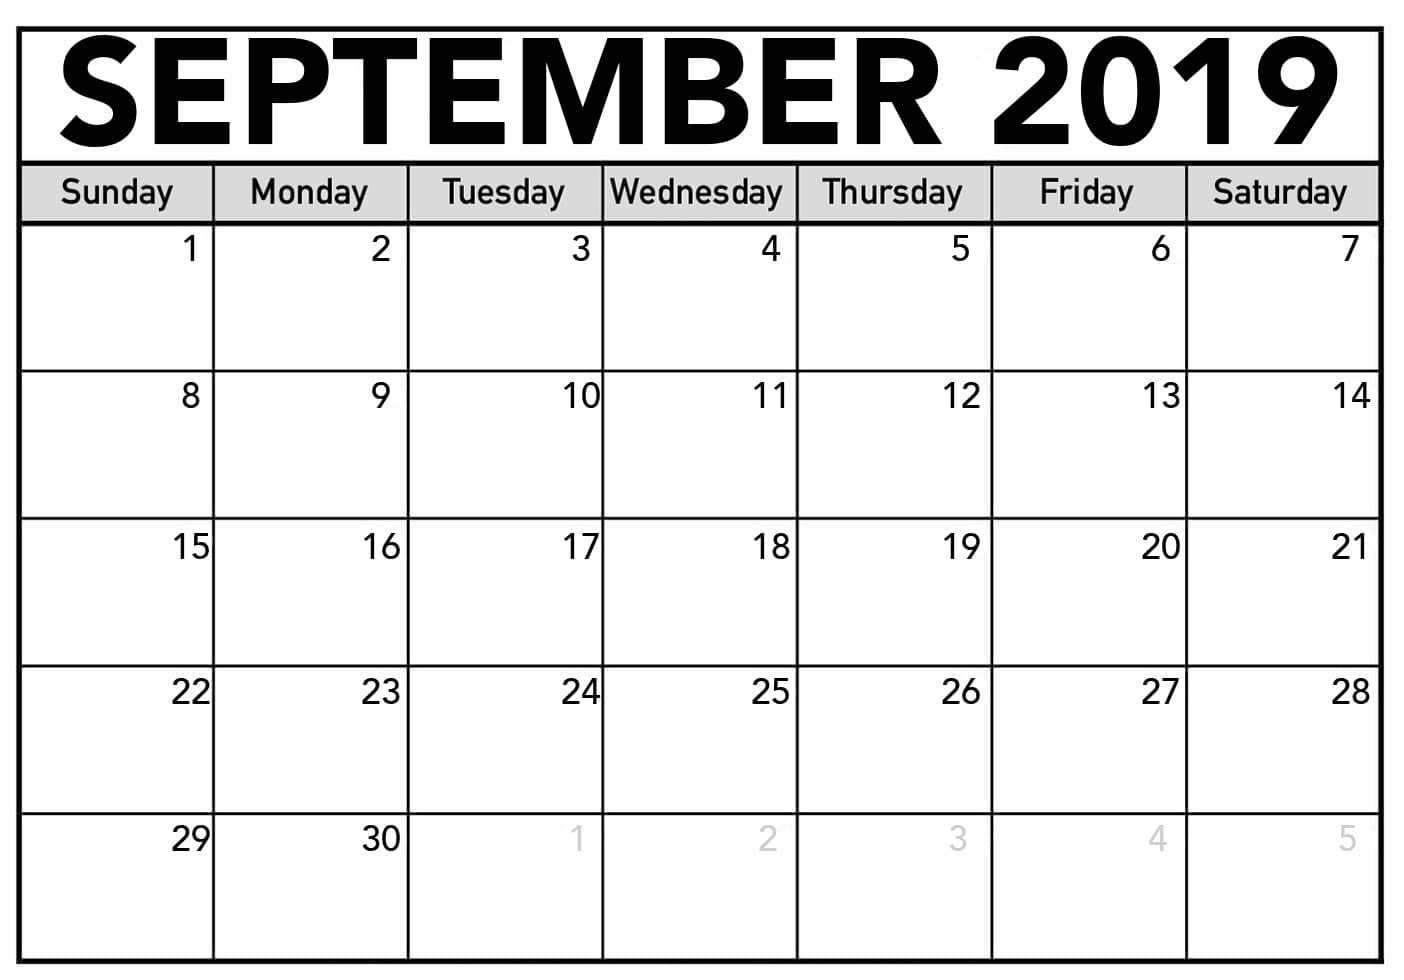 Free September 2019 Calendar Printable Blank Templates Pdf Page pertaining to Blank September Calendar Printable